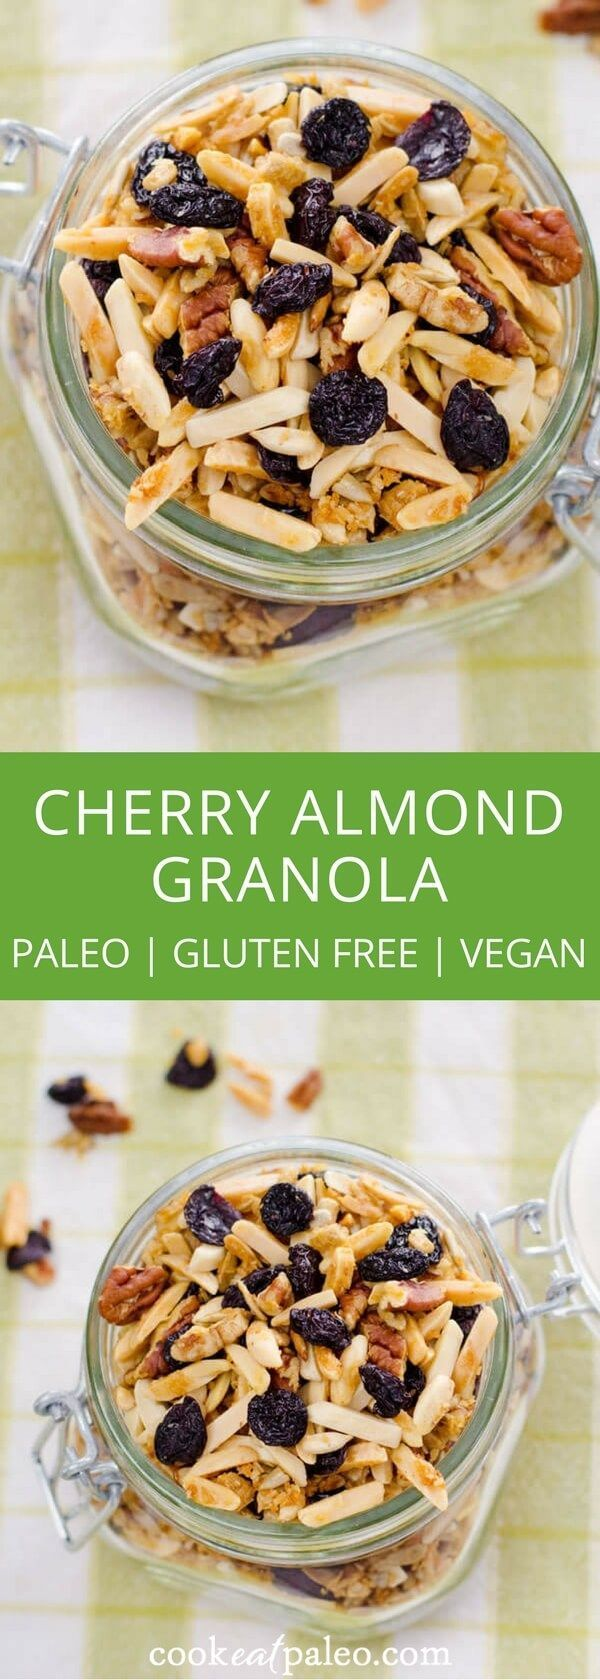 This quick and easy cherry almond paleo granolarecipe is gluten-free, grain-free, and refined sugar-free with a vegan option. And it's hard to resist... via @cookeatpaleo